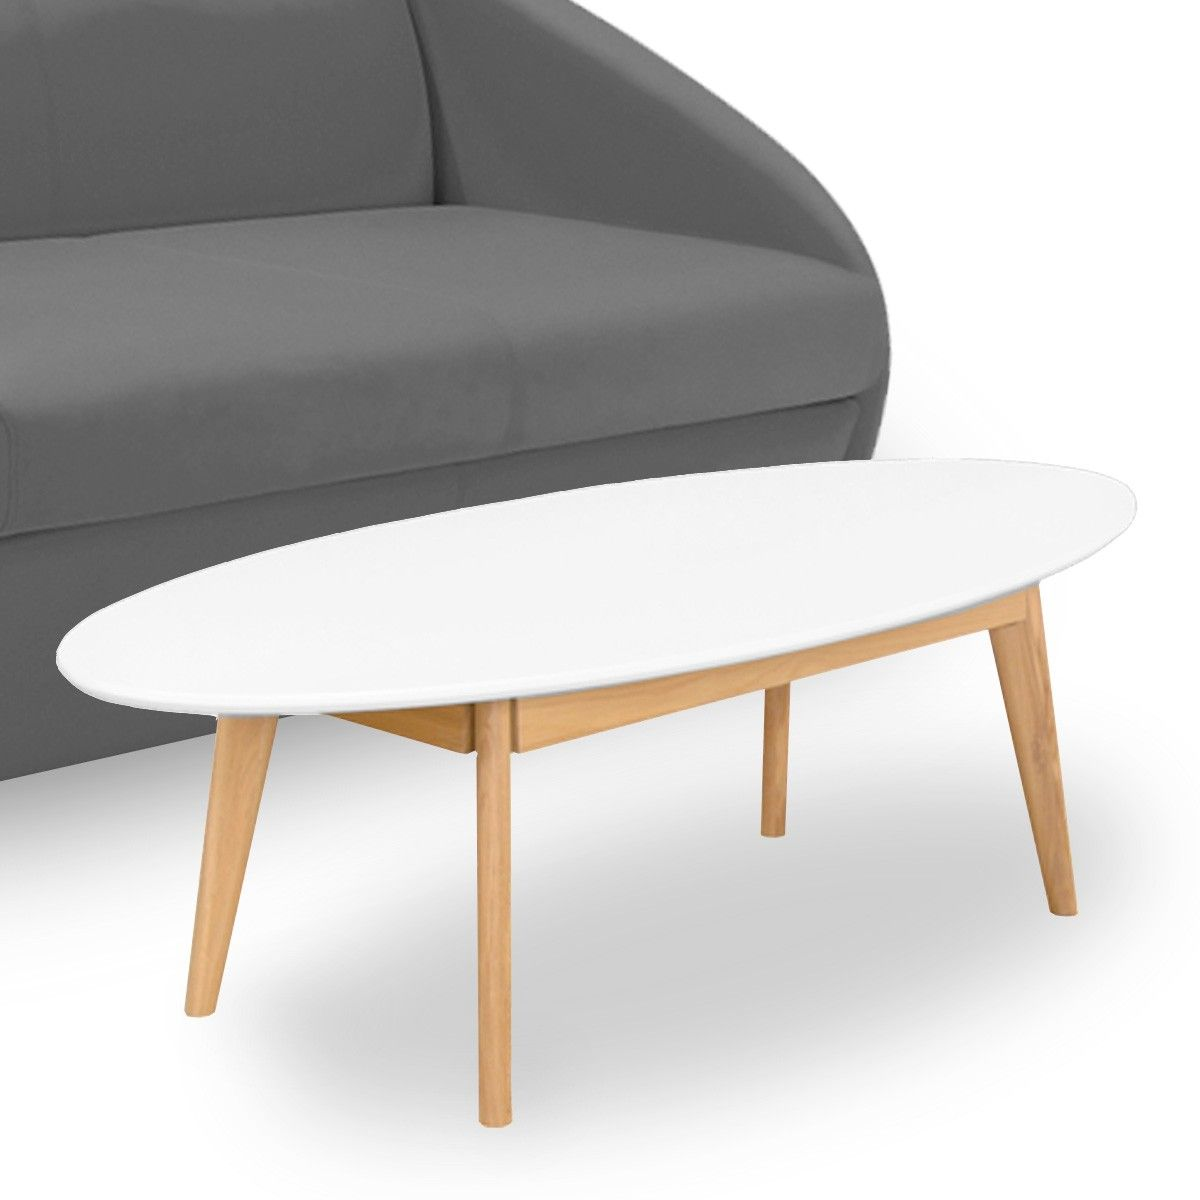 La table basse parfaite pour votre salon rise and shine for Table basse scandinave